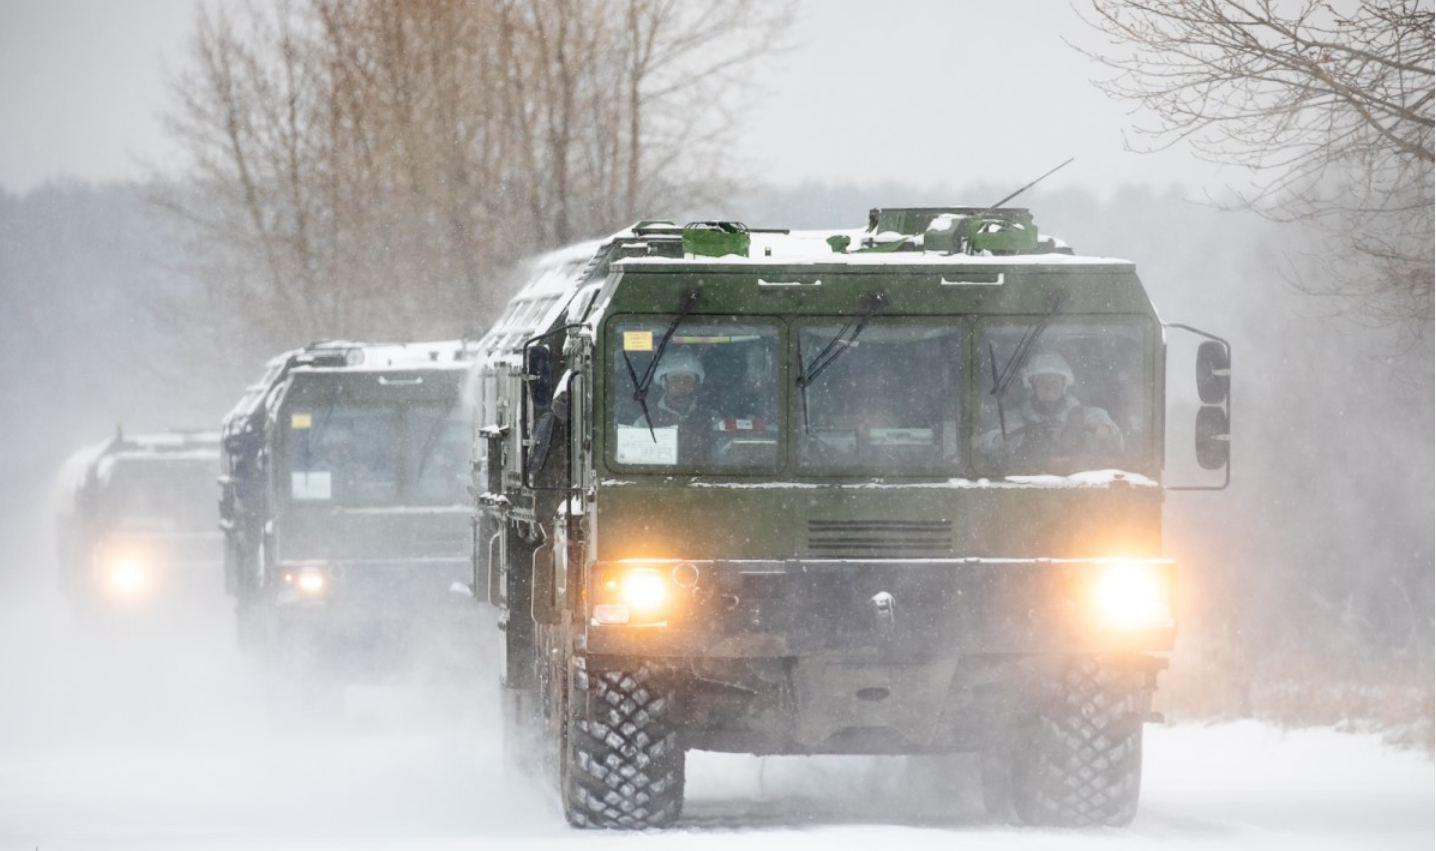 Drones, Battle Tanks, Aircraft and Iskanders: Russia Advances Military Buildup in Kaliningrad